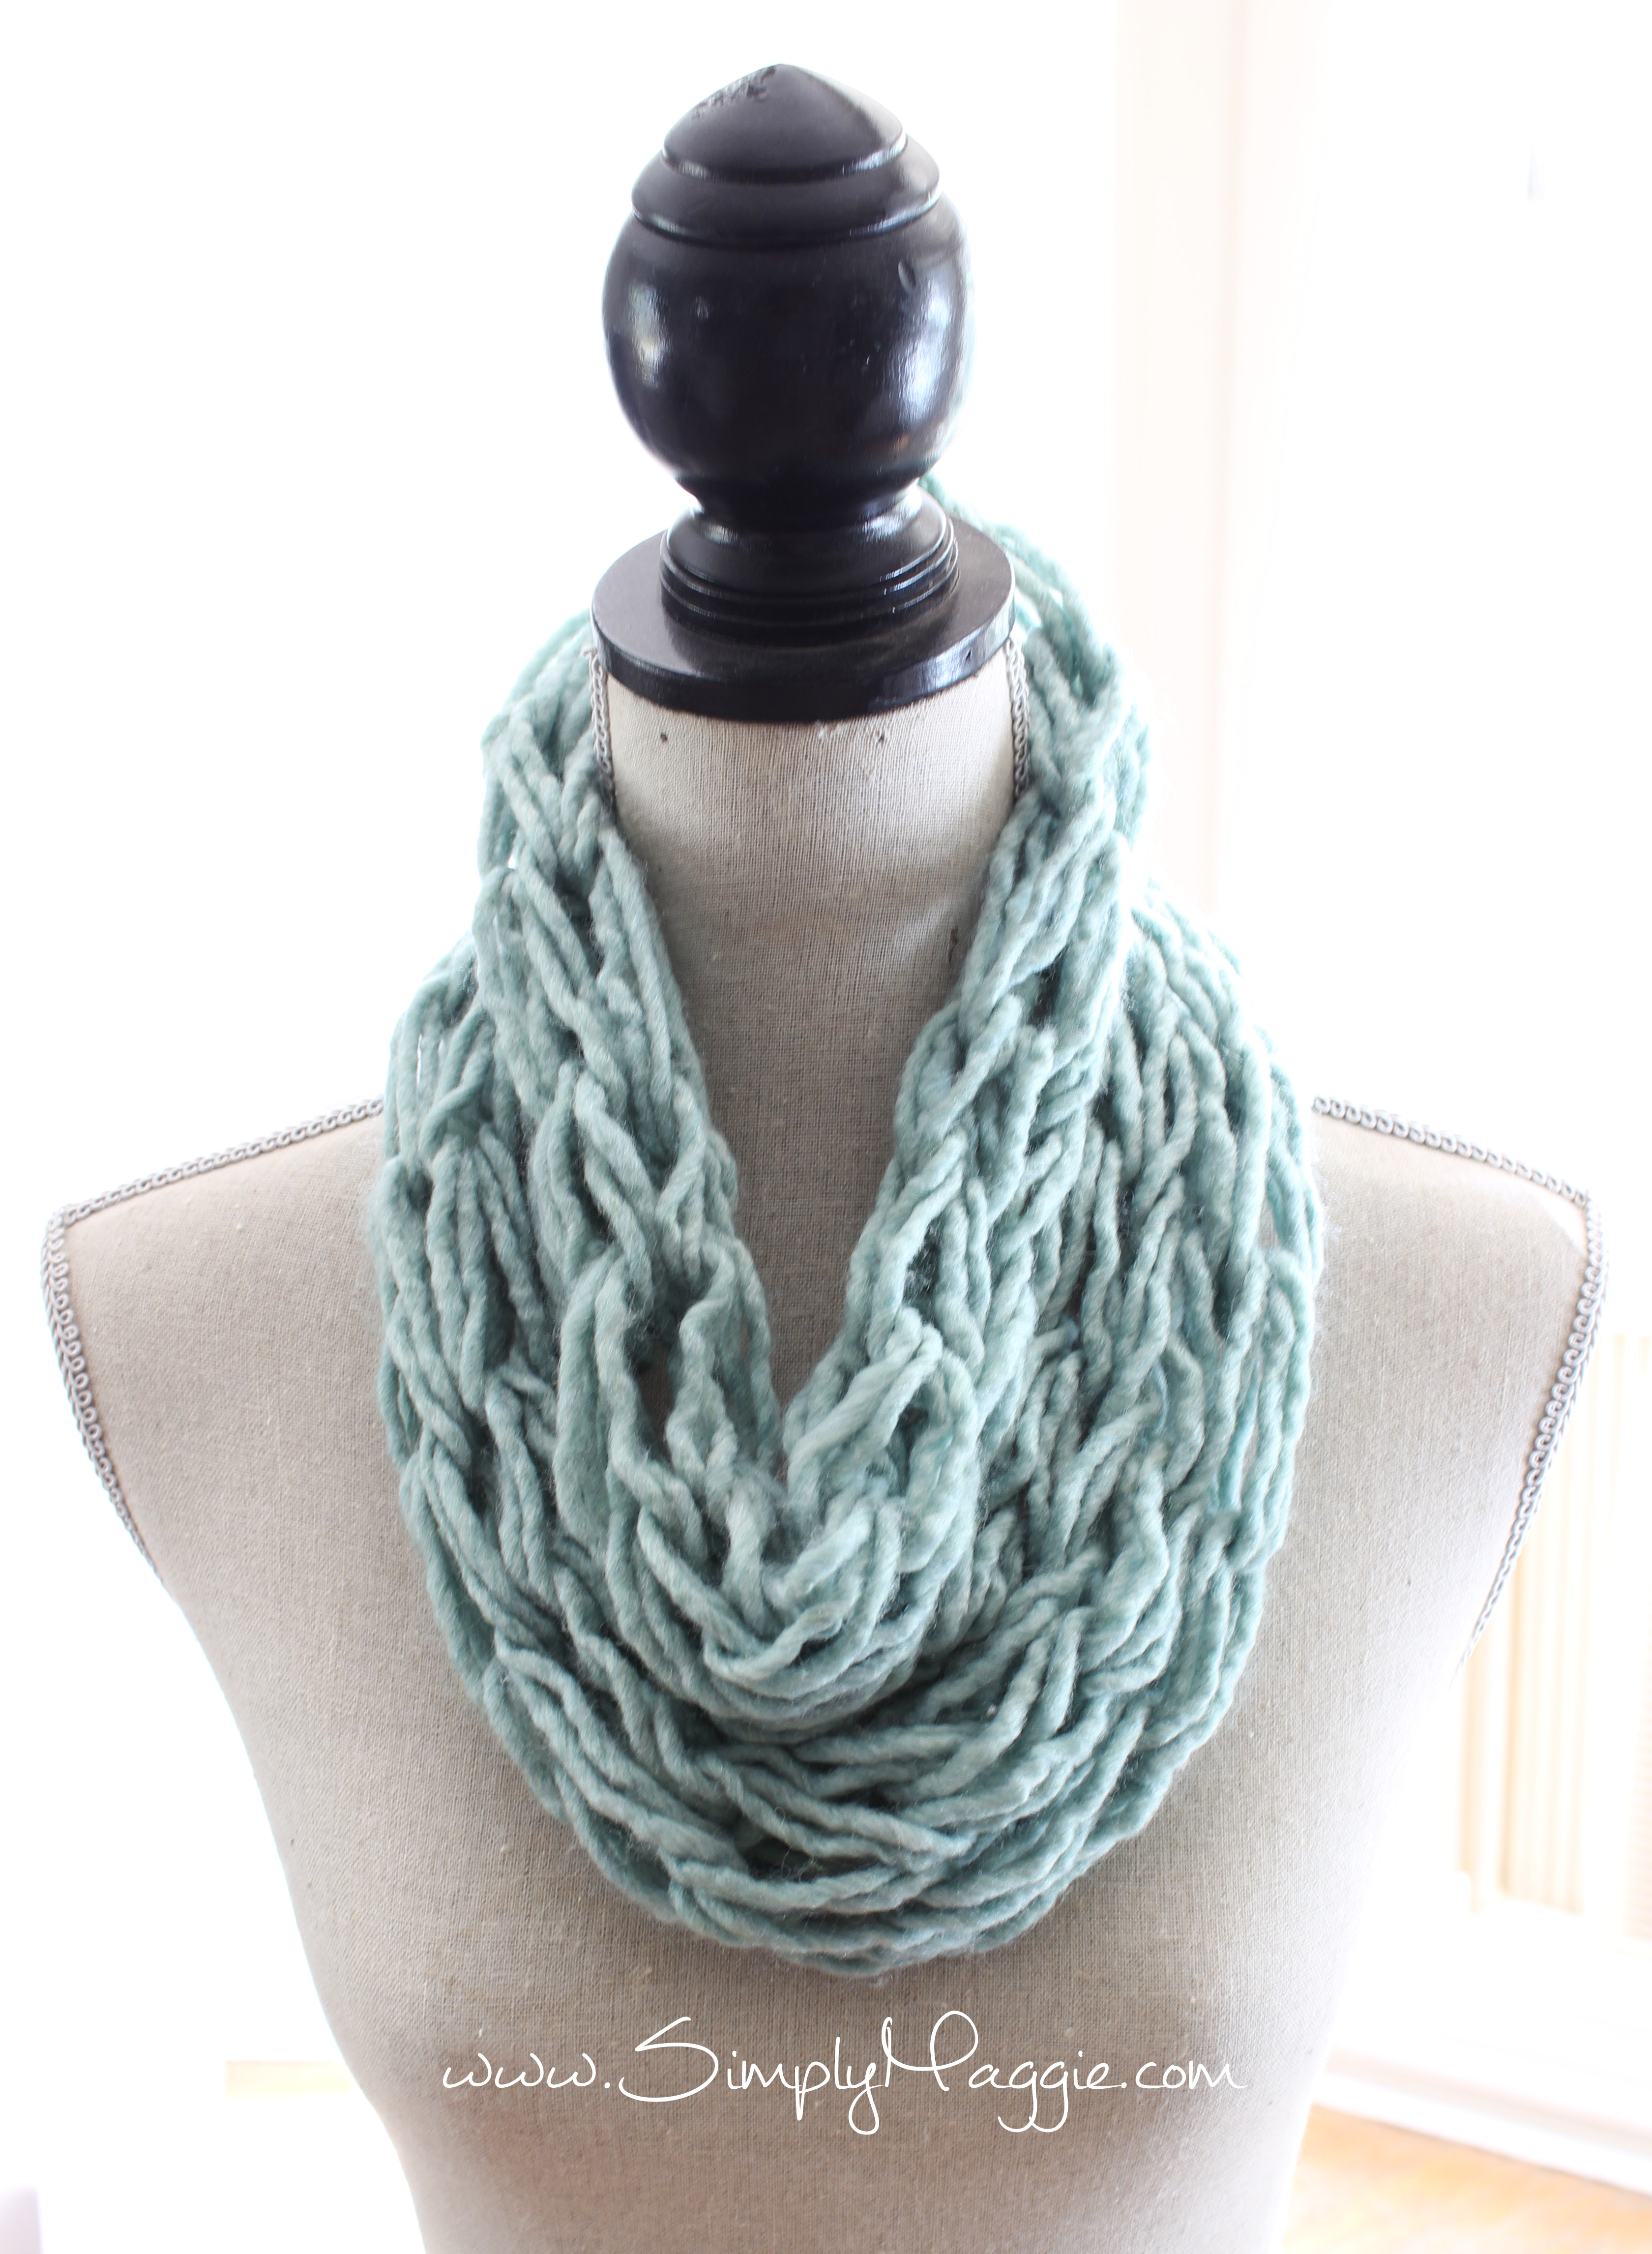 sbe net scarves infinity grey dgry michelle scarf knit